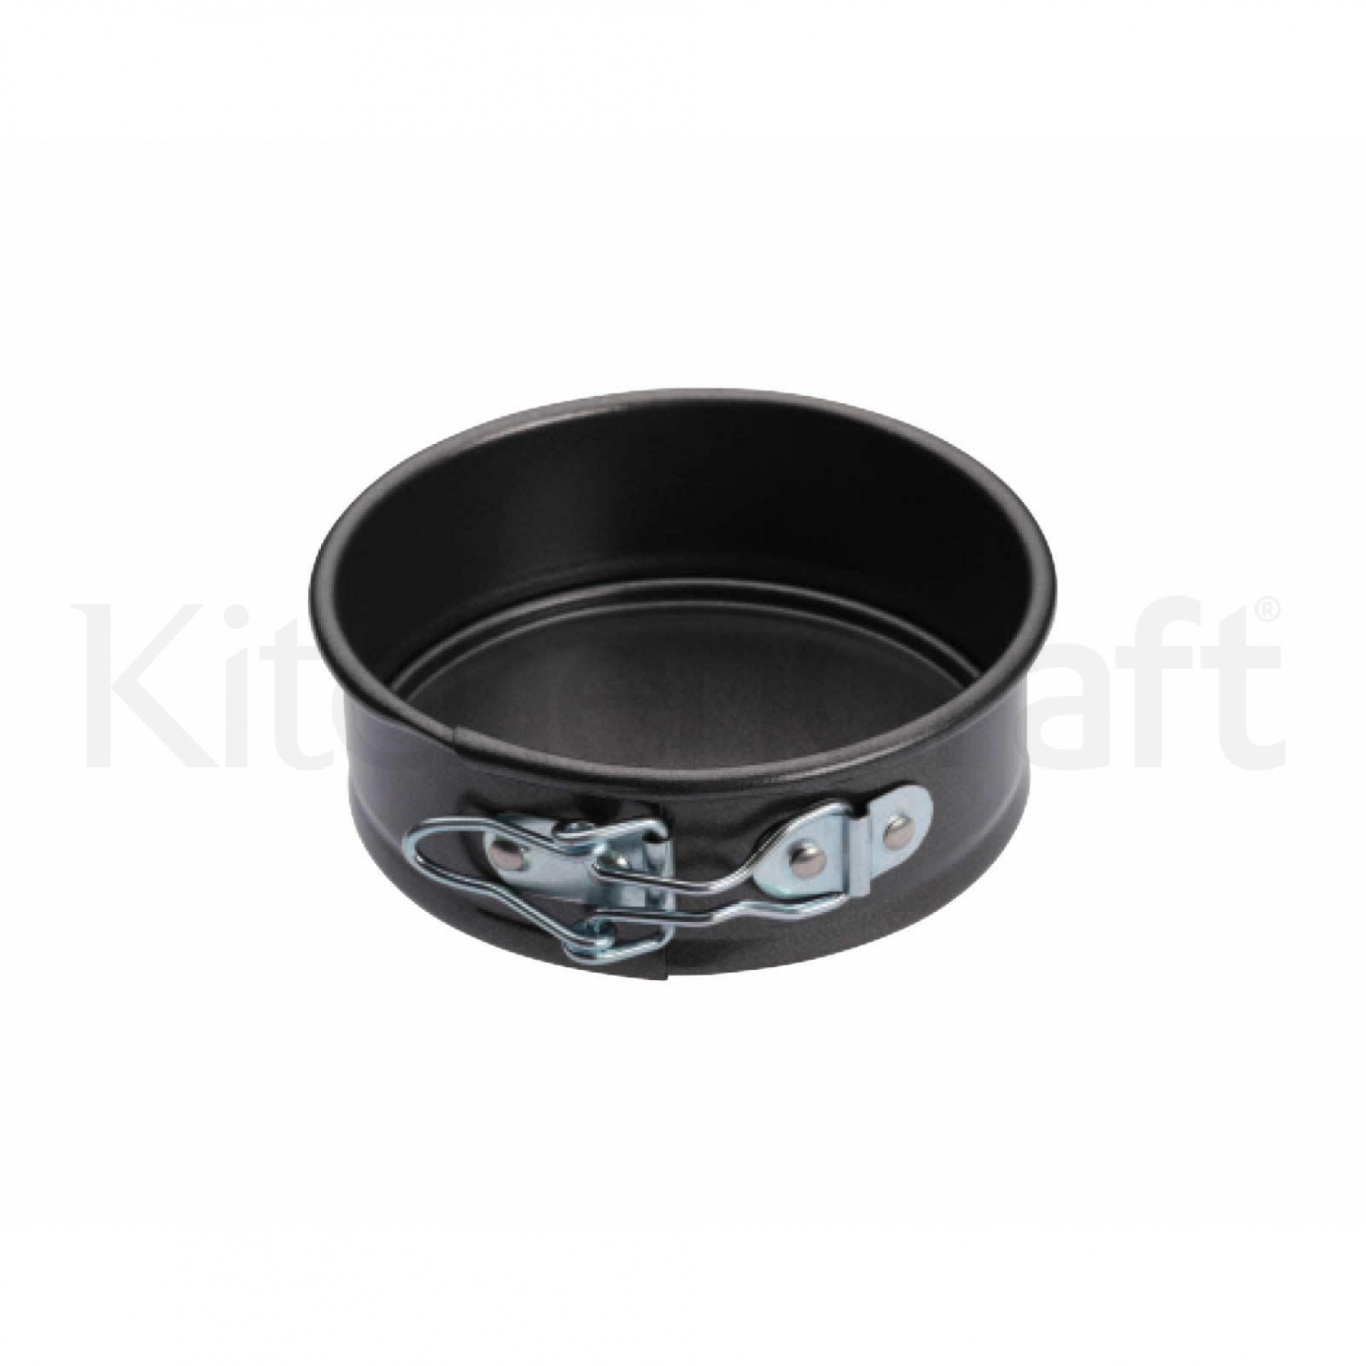 Image of Spring Form Cake Pan 11cm